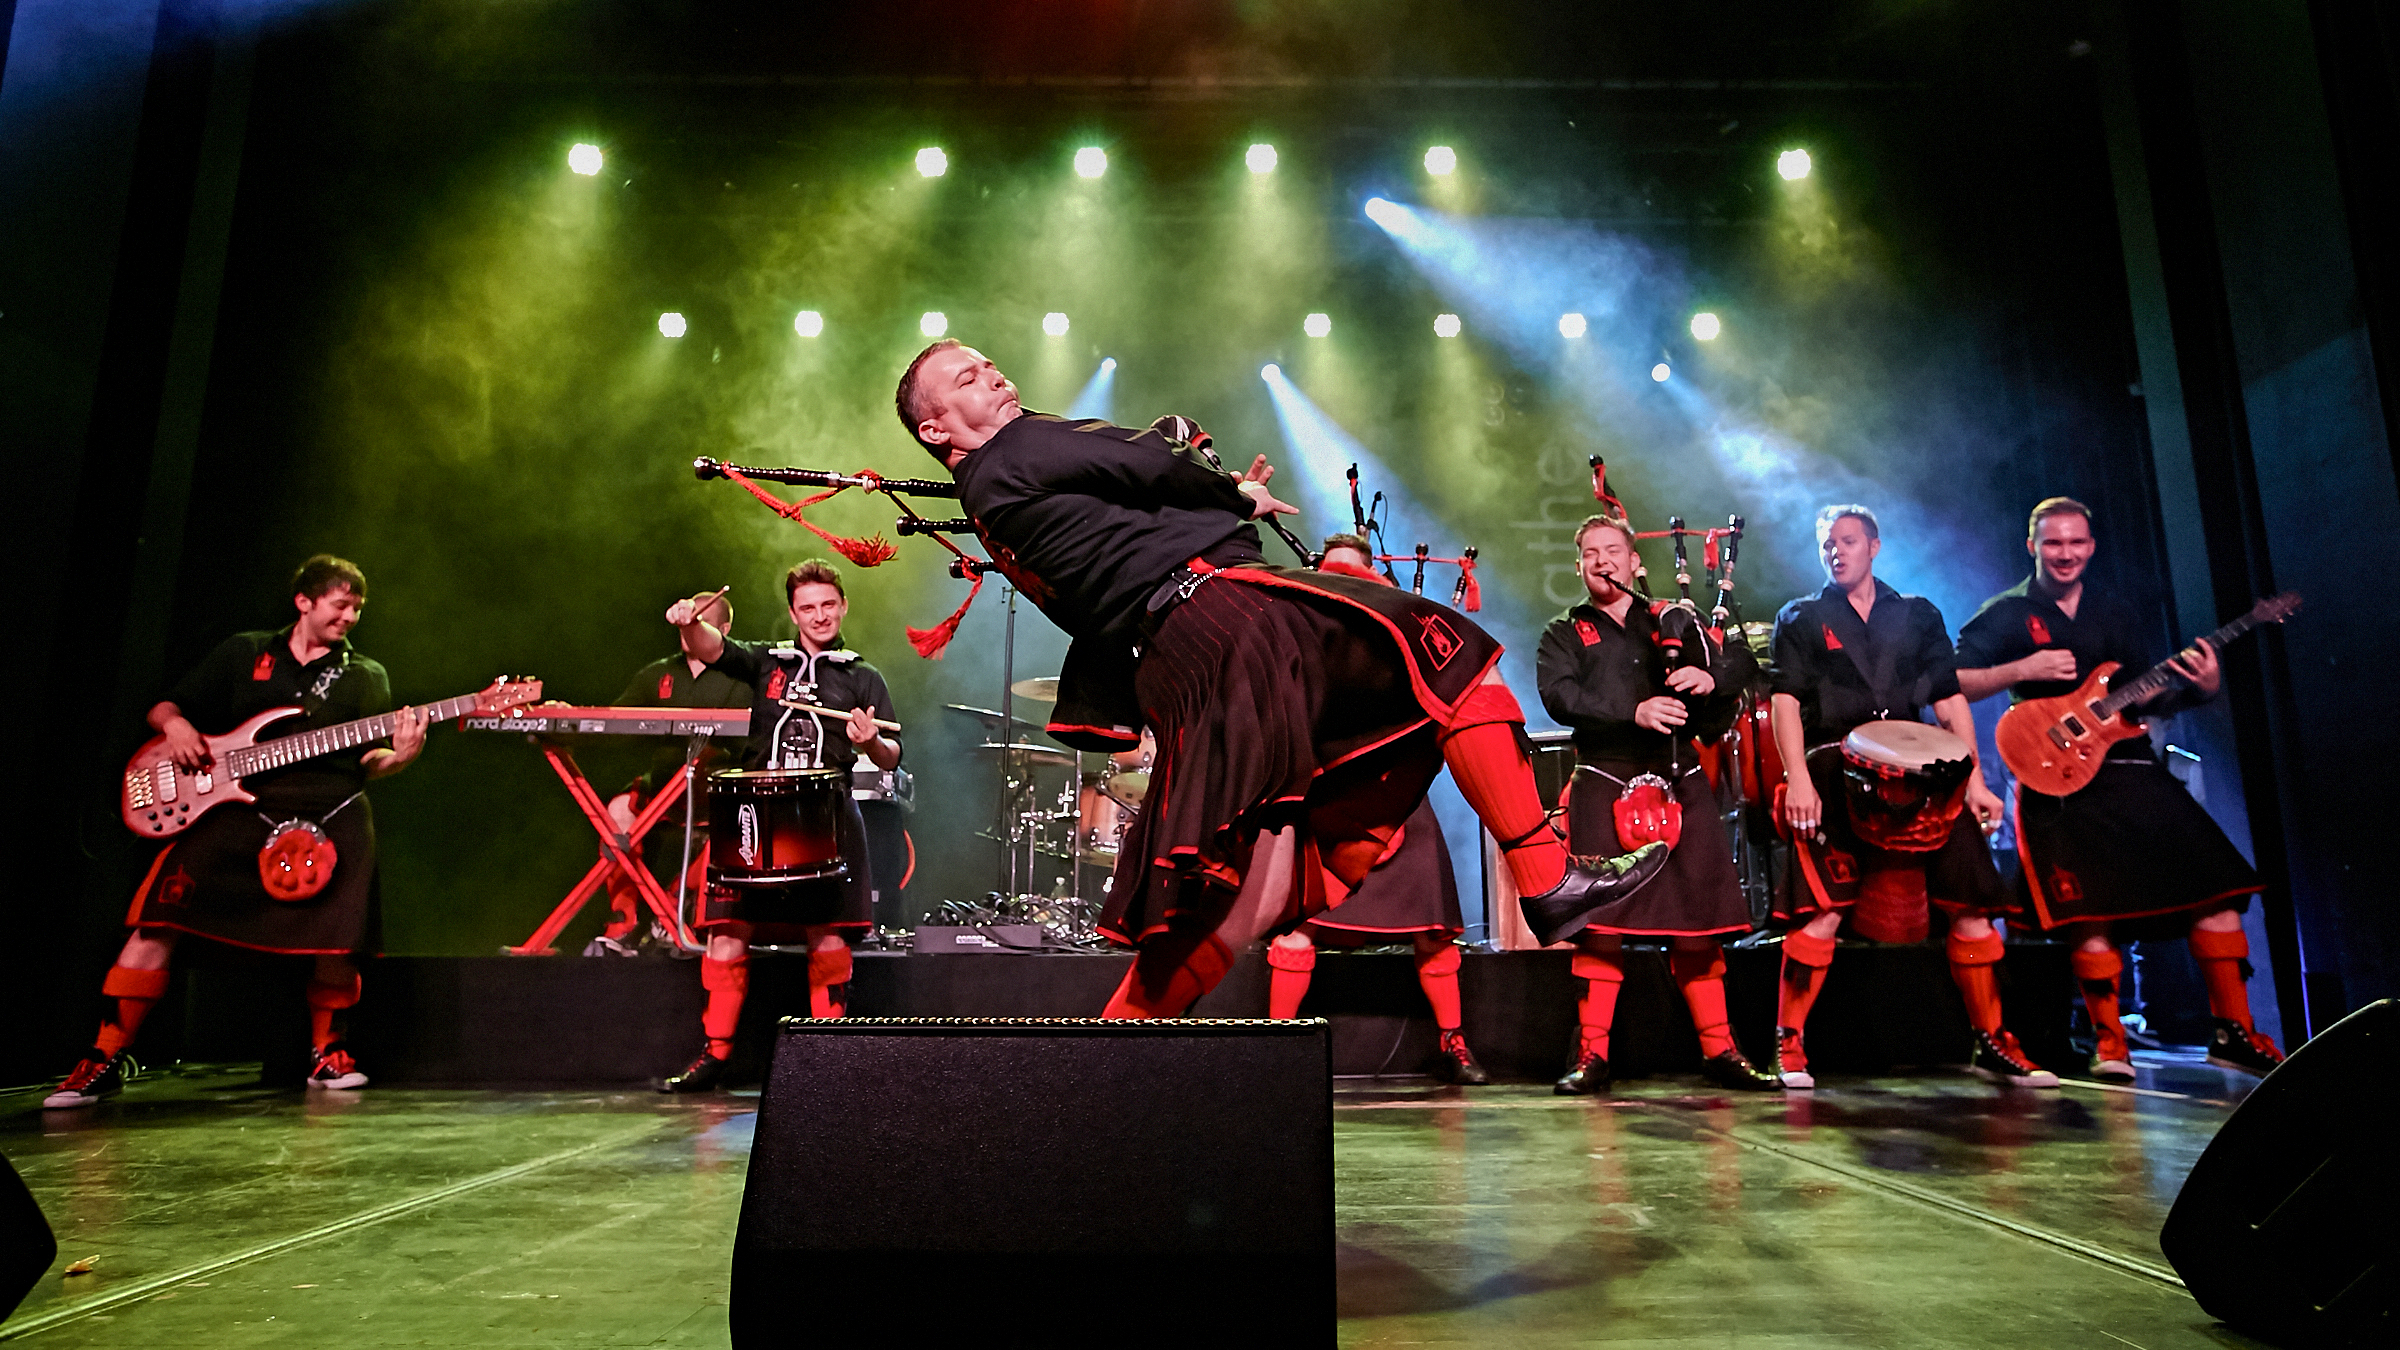 red-hot-chilli-pipers-im-oktober-und-november-auf-tour